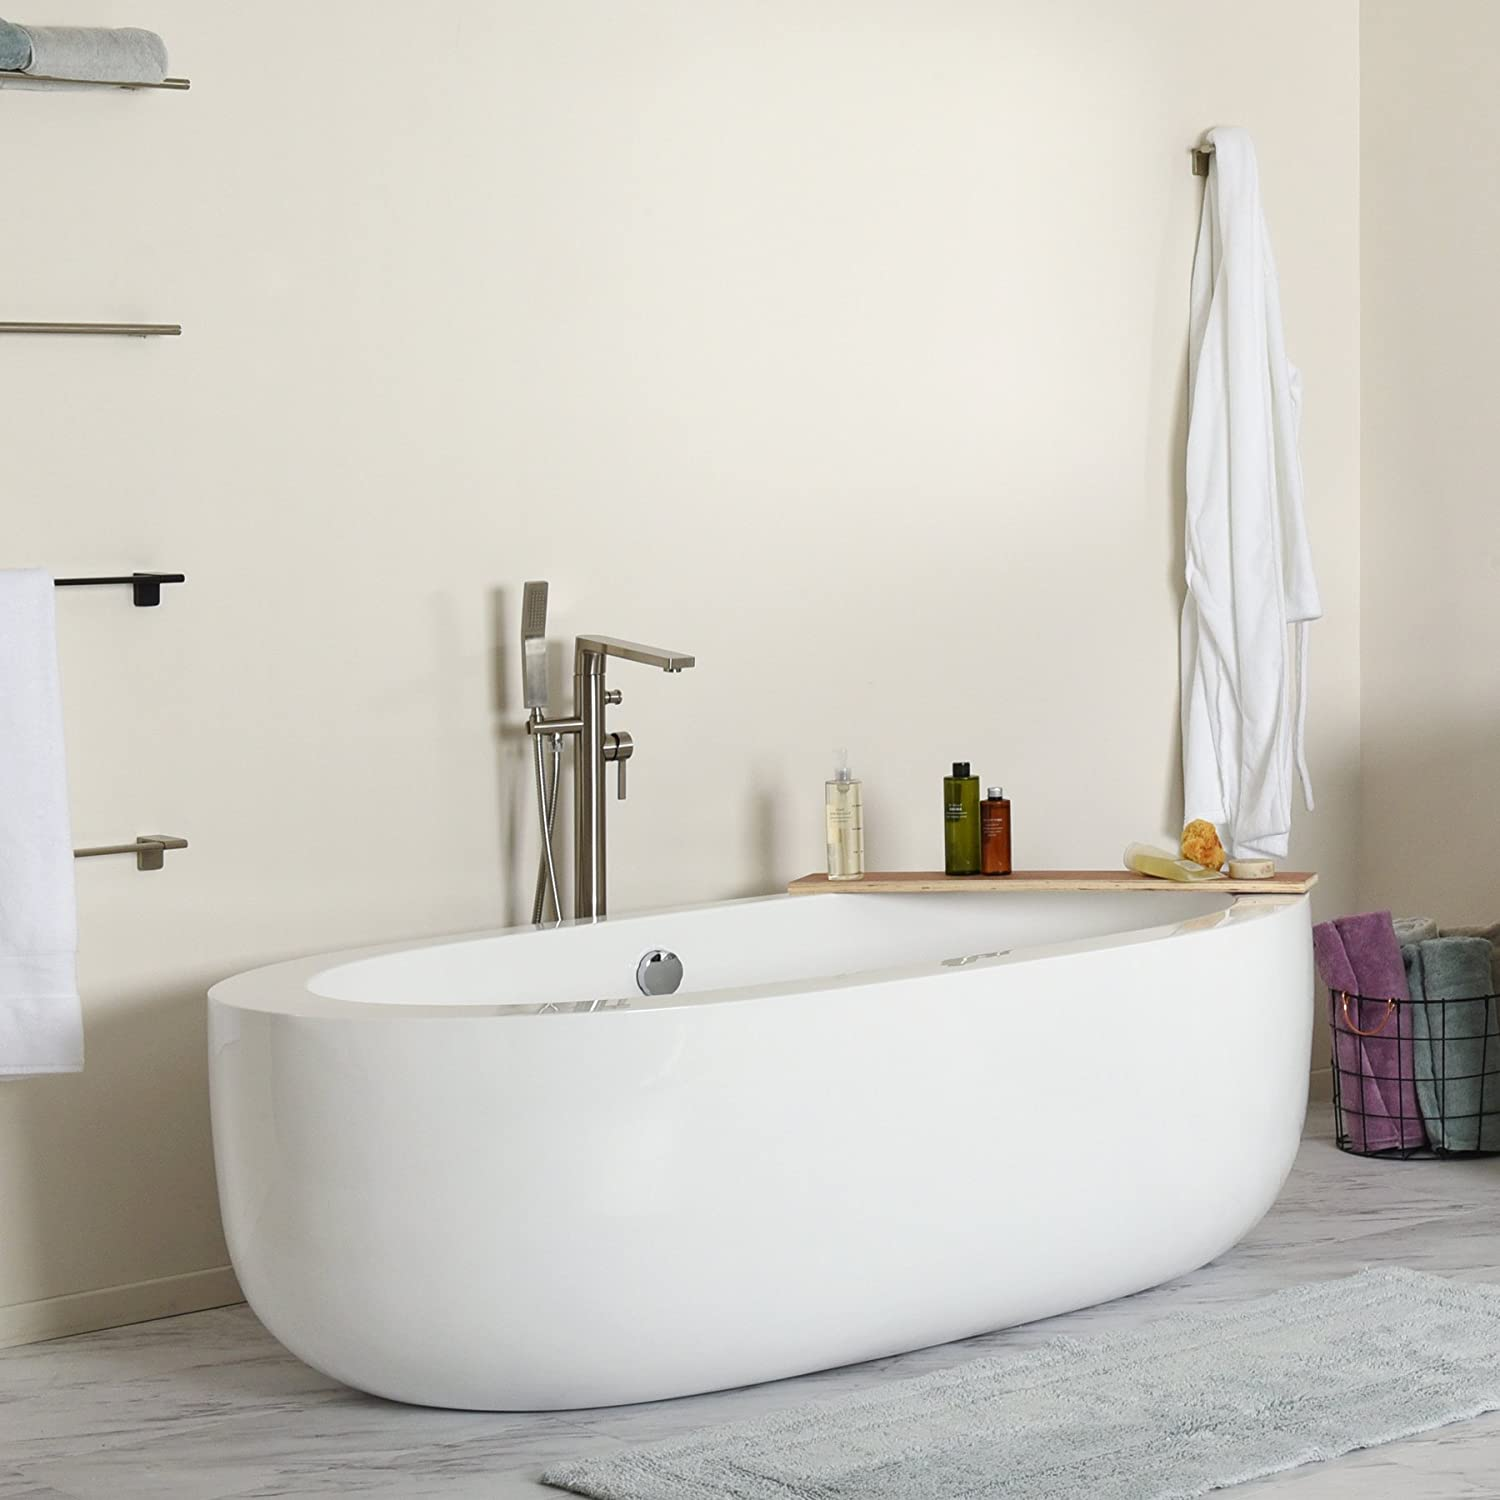 6 Oversized Bathtubs For Tall People | People Living Tall